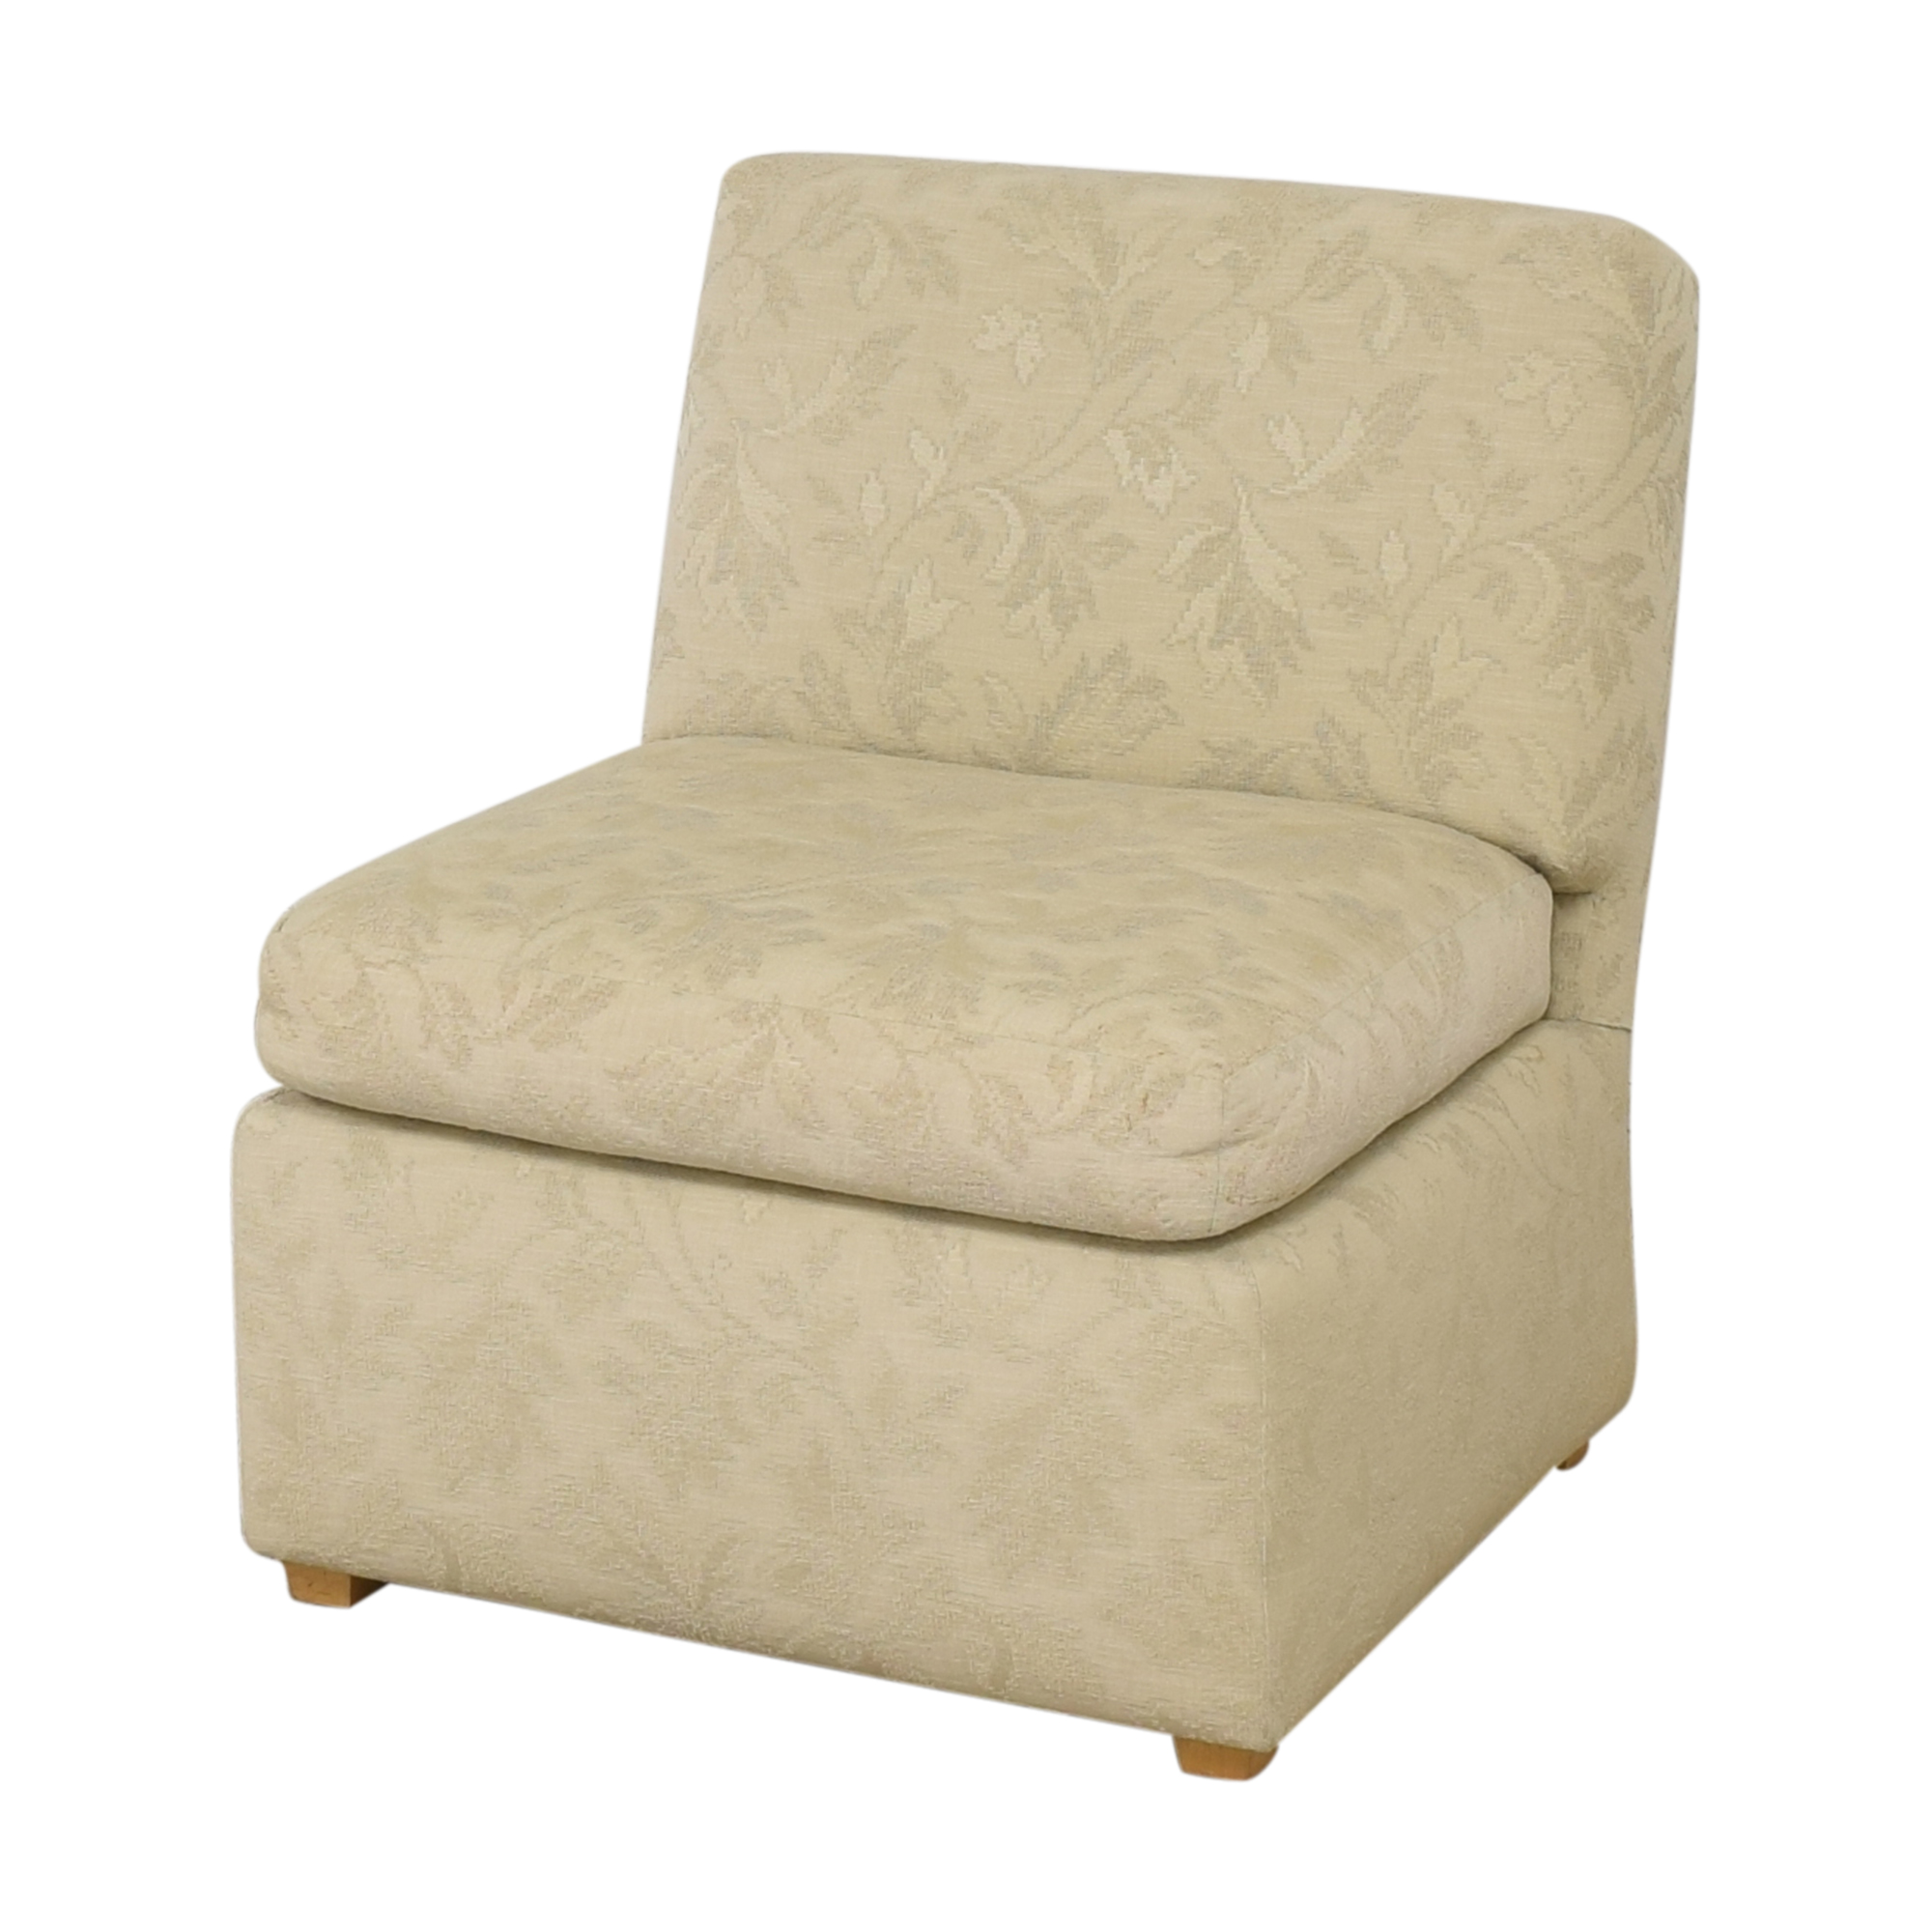 Billy Baldwin Studio Billy Baldwin Studio Large Slipper Chair by Ventry for sale